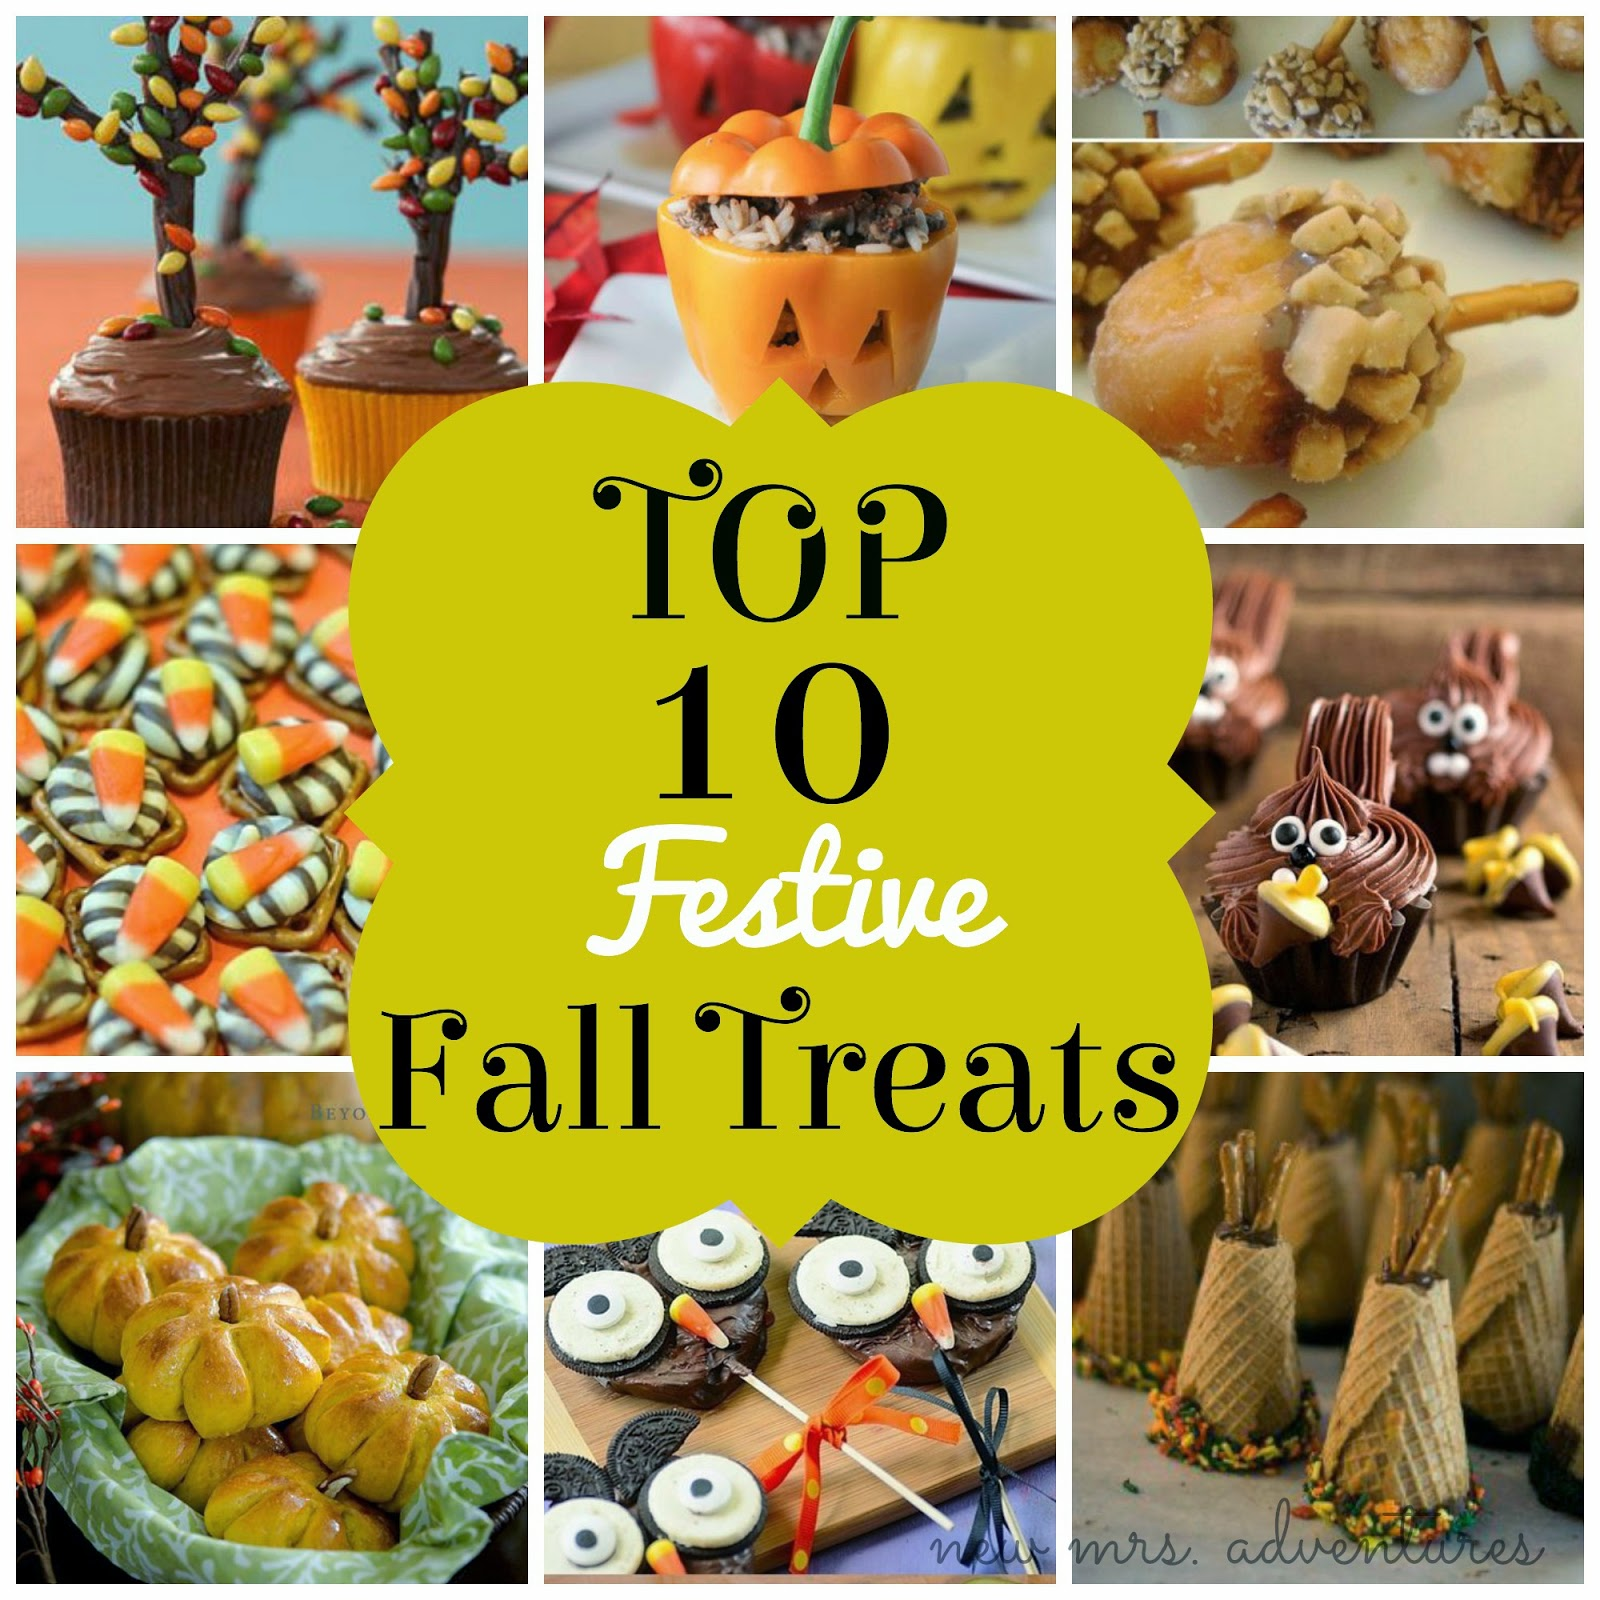 Barnabas Lane: Top 10 Festive Fall Treats